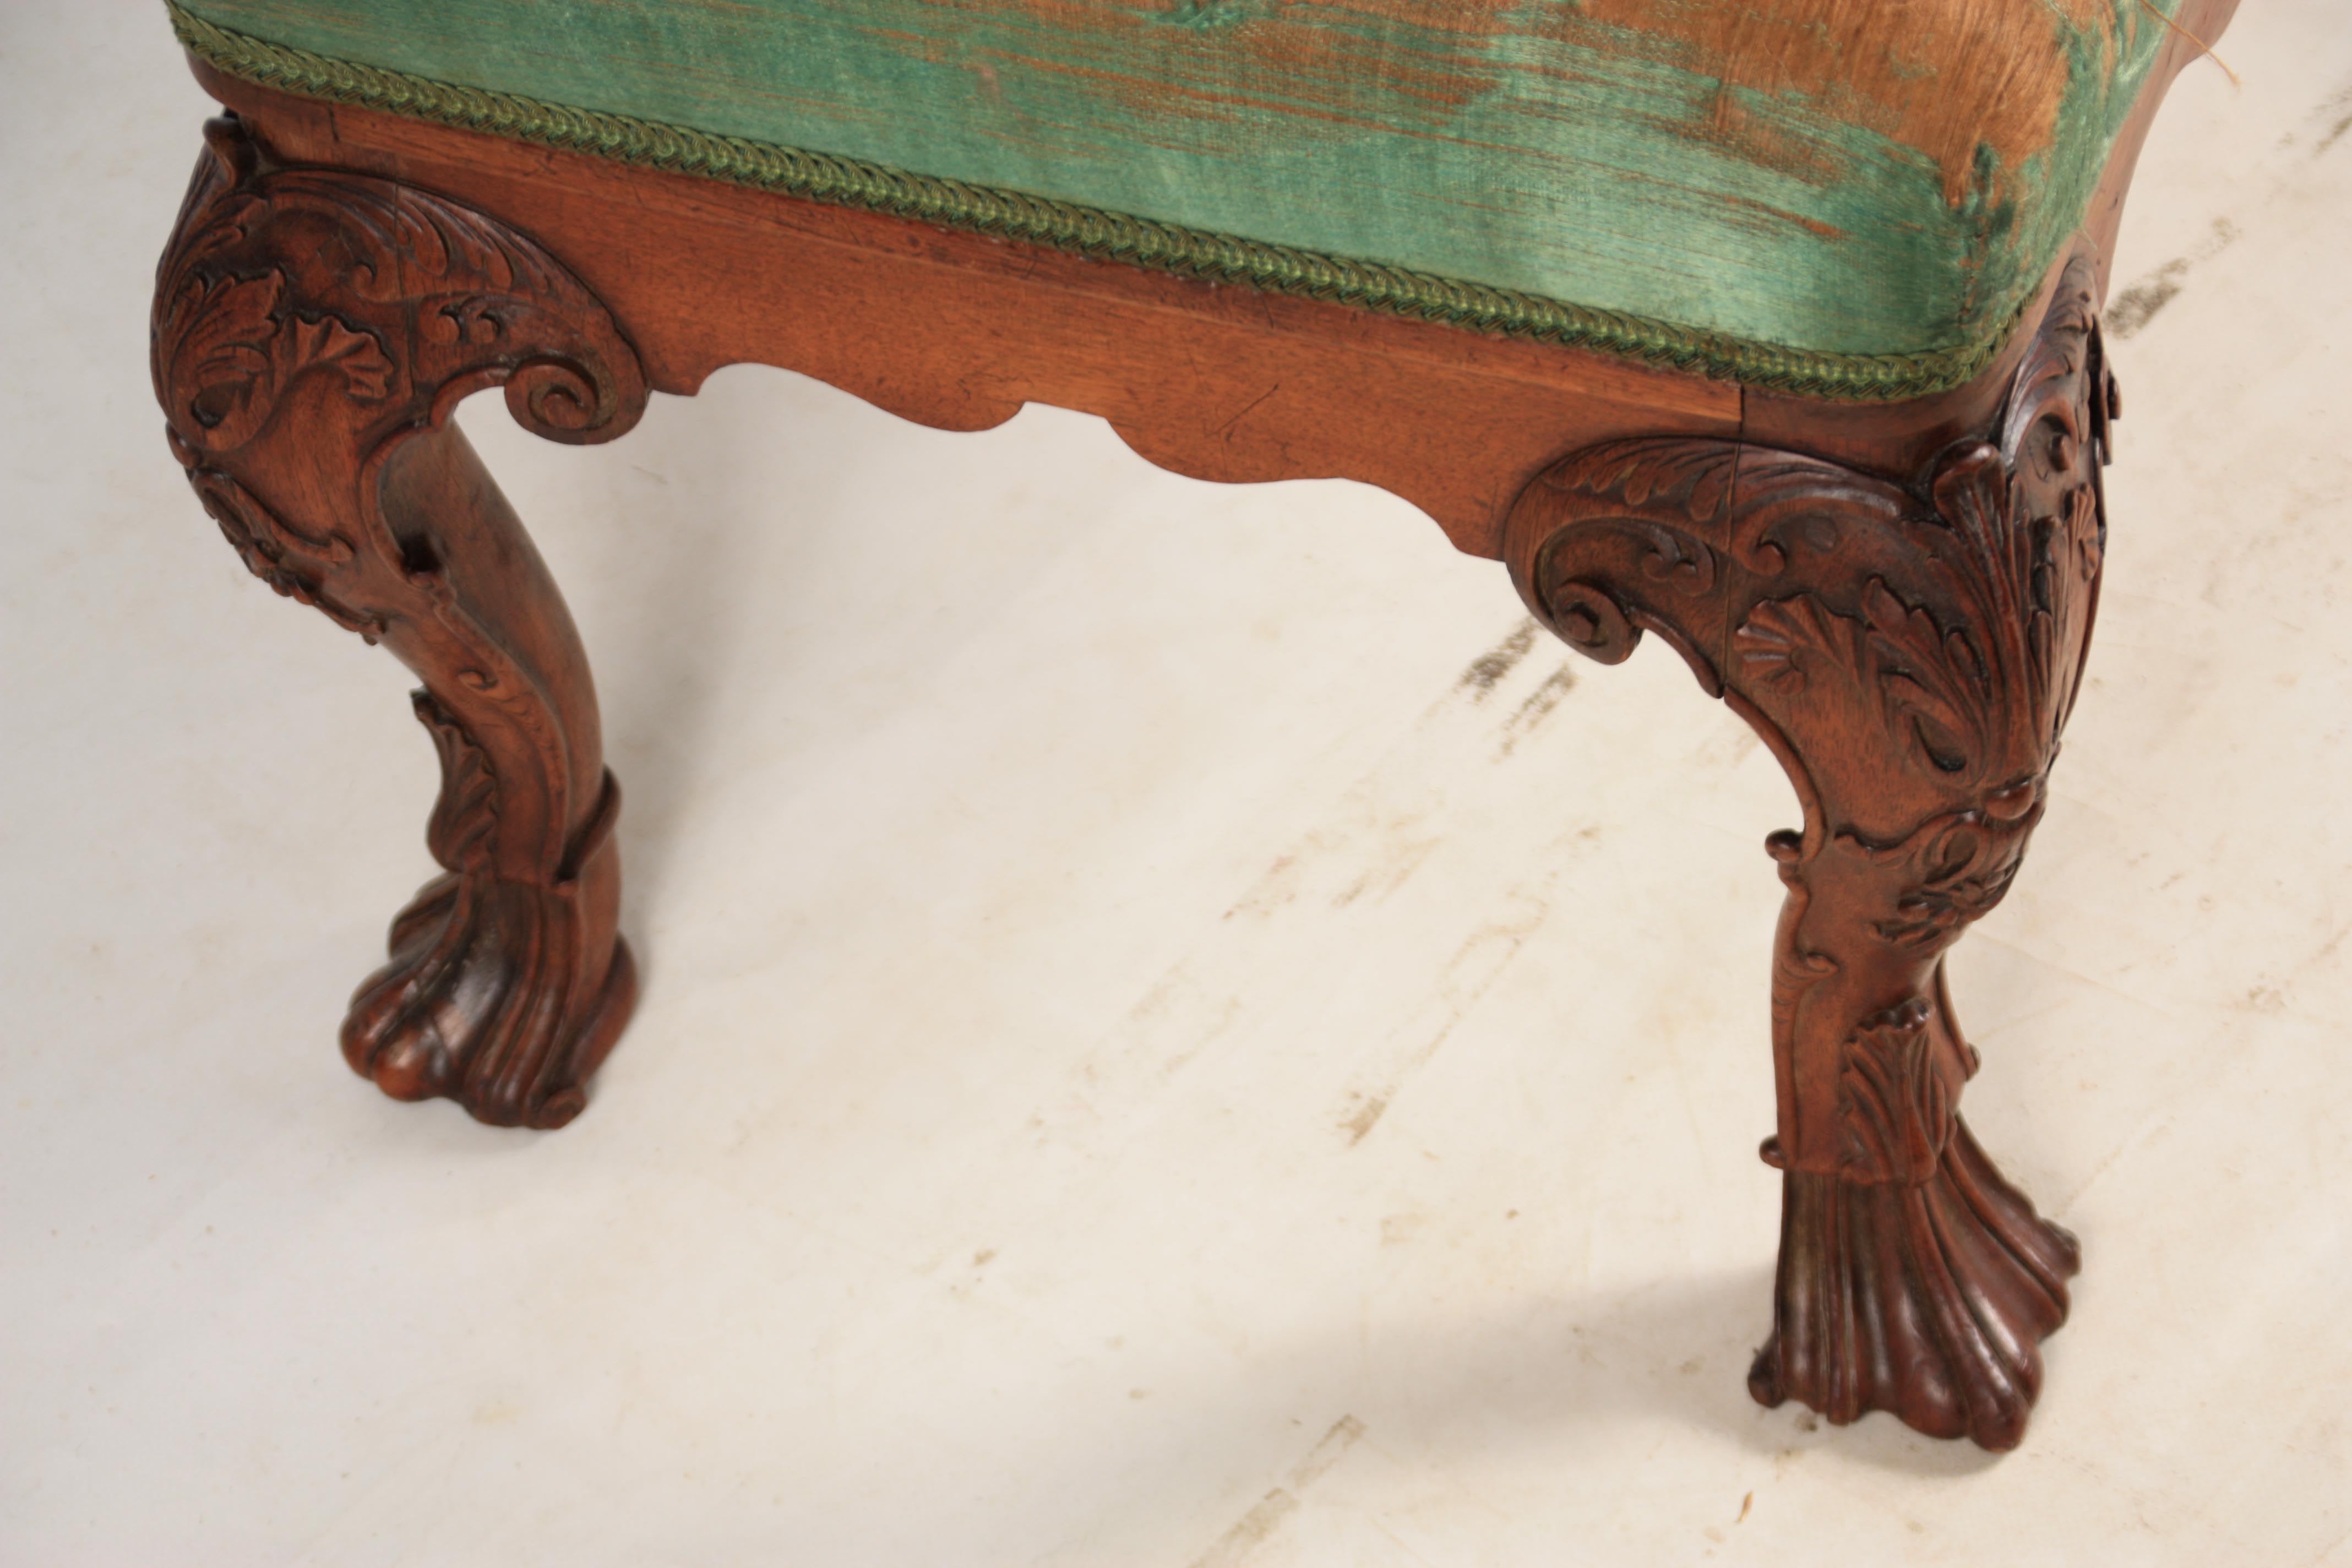 A MID 18TH CENTURY IRISH STYLE MAHOGANY DRESSING TABLE STOOL with upholstered top above shaped rails - Image 4 of 7